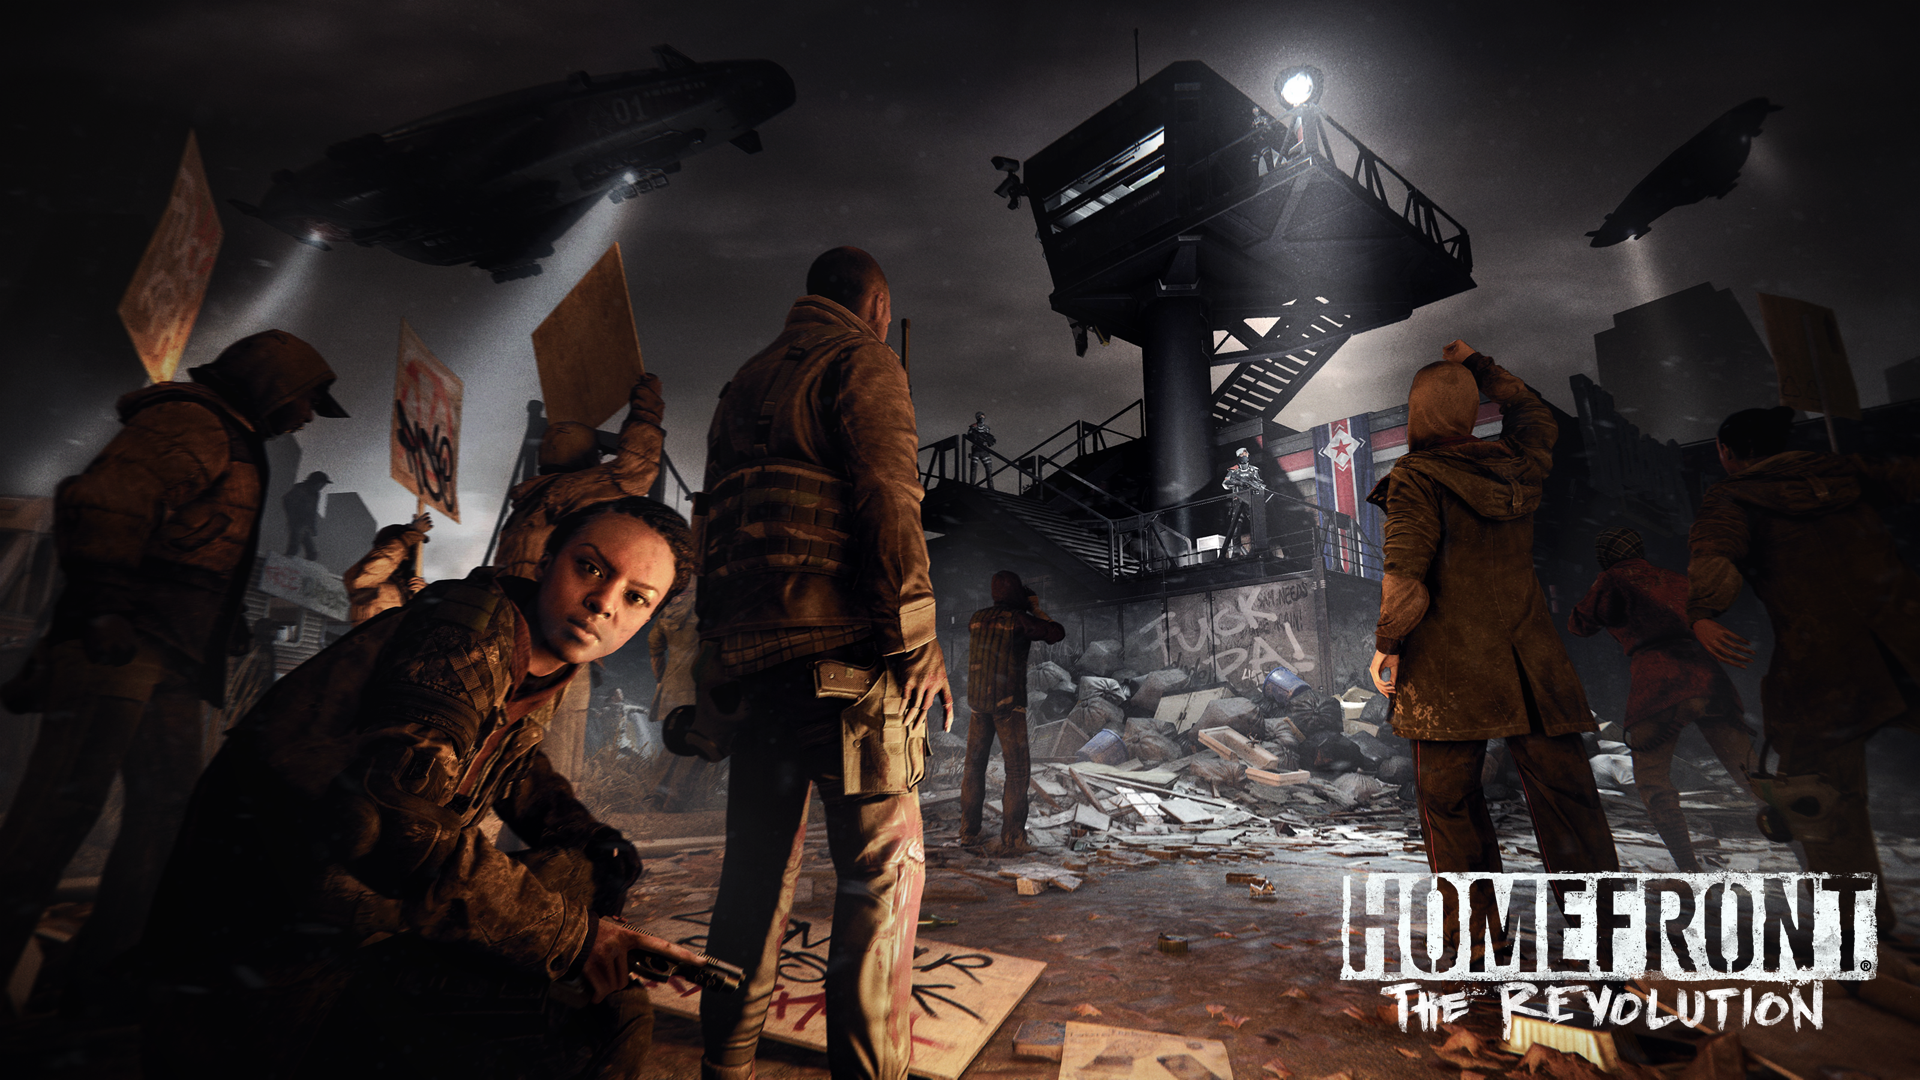 . Hdpng.com Gallery Image 9 Gallery Image 10. The 2011 Original Homefront Was Published By Thq Hdpng.com  - Homefront Video Game, Transparent background PNG HD thumbnail